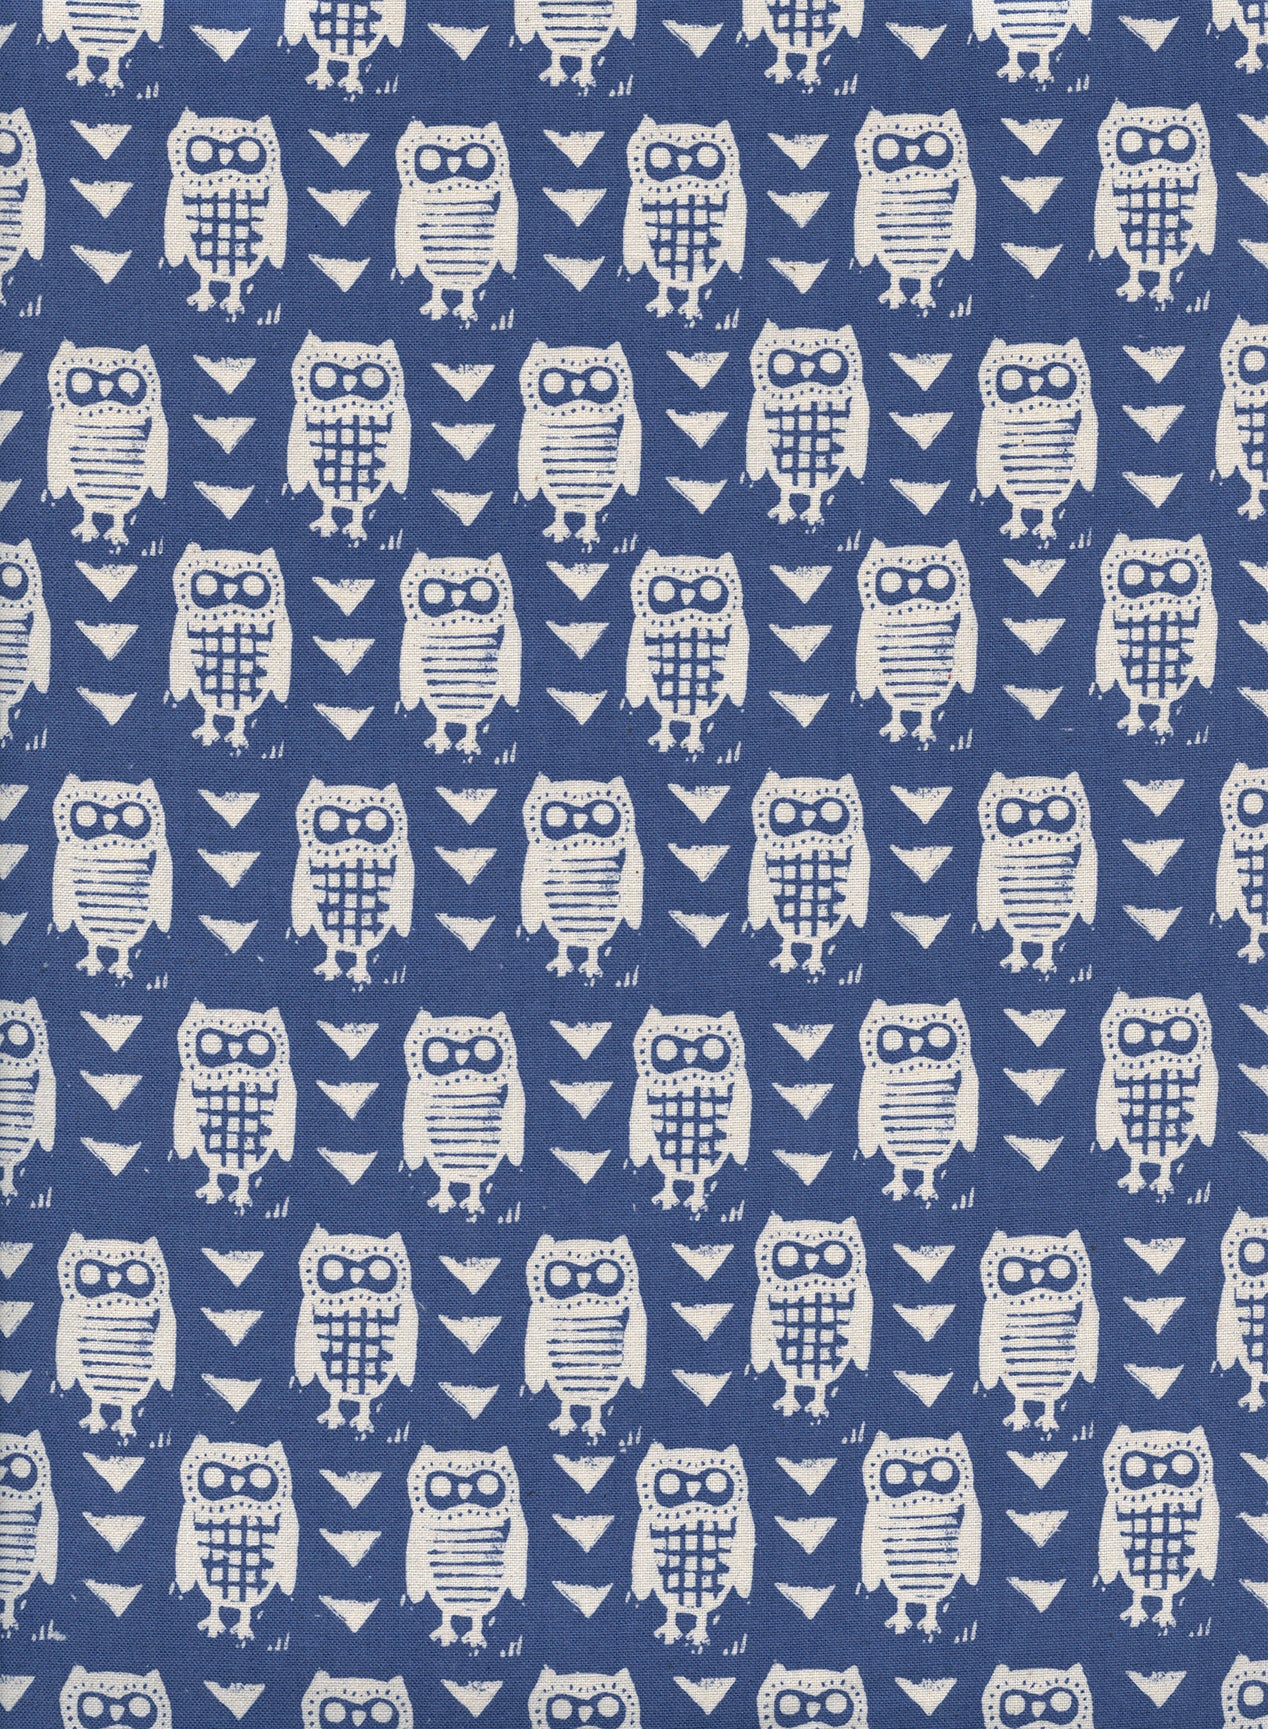 C+S Firelight - Hooties - Blue Unbleached Cotton Fabric